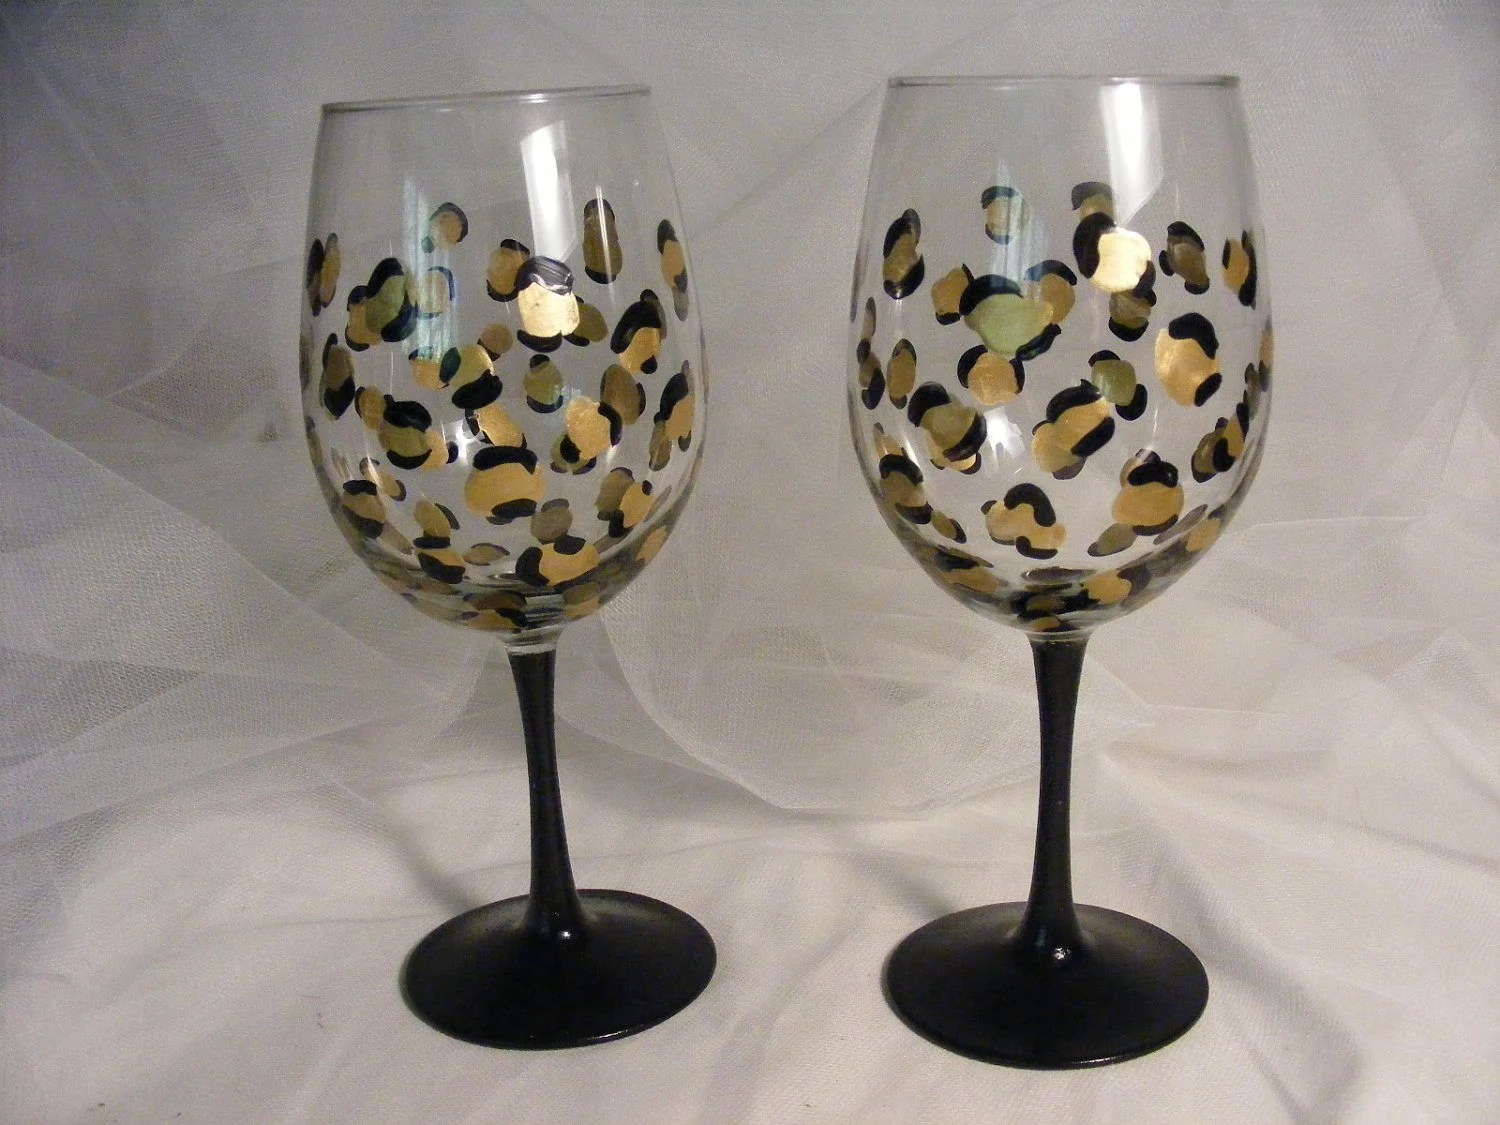 Wine Glasses With Black Stems Leopard Print Wine Glasses With Black Stem By Delightfulfinds